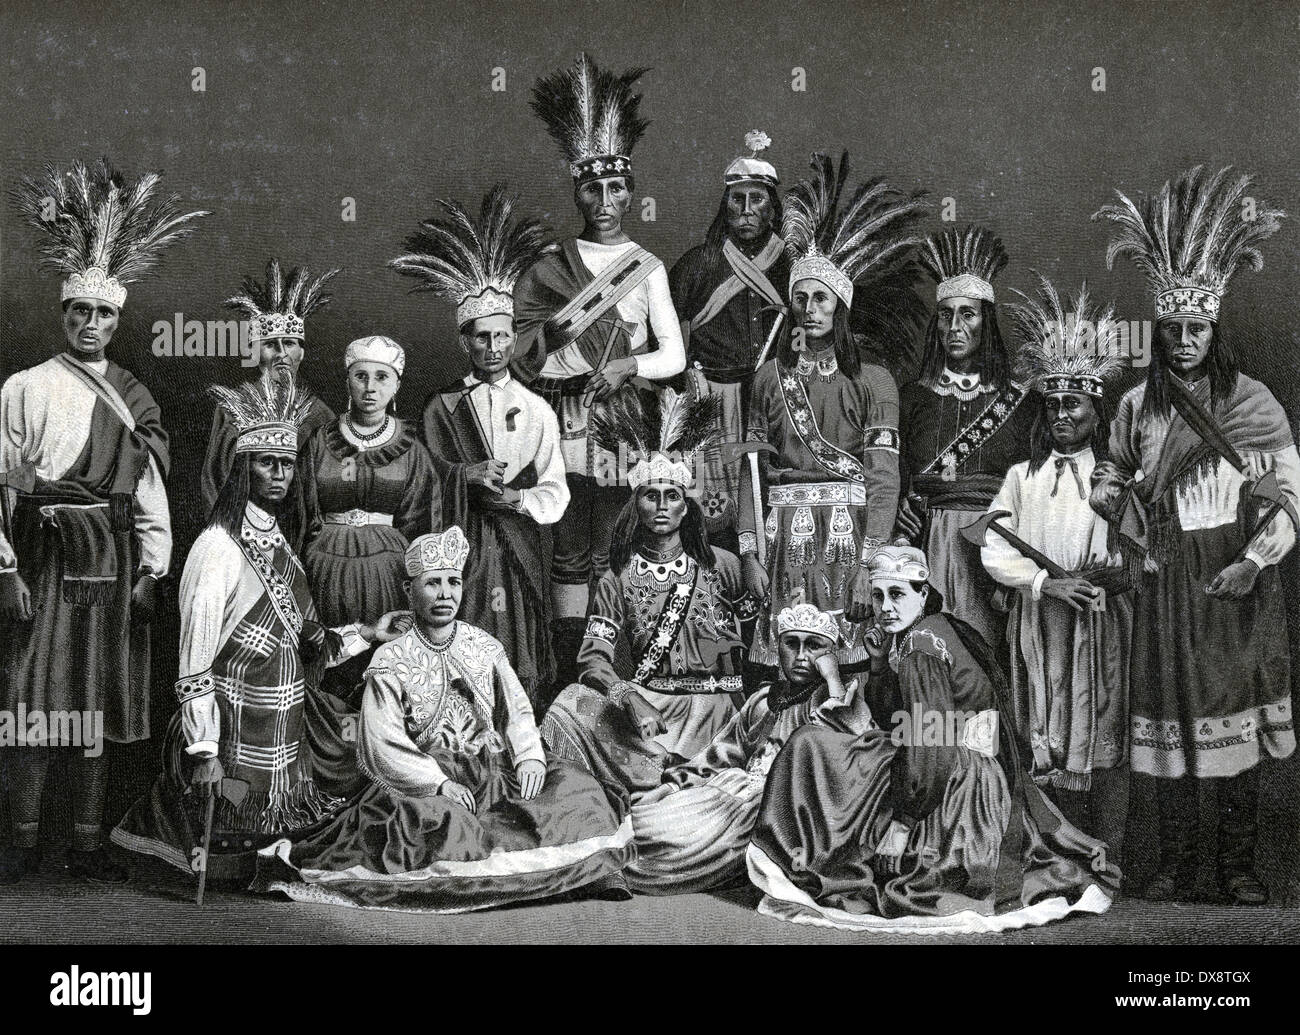 Circa 1885 view of Iroquois Indians in Montreal, Quebec, Canada. From an antique souvenir album using the Glaser/Frey lithographic process. - Stock Image